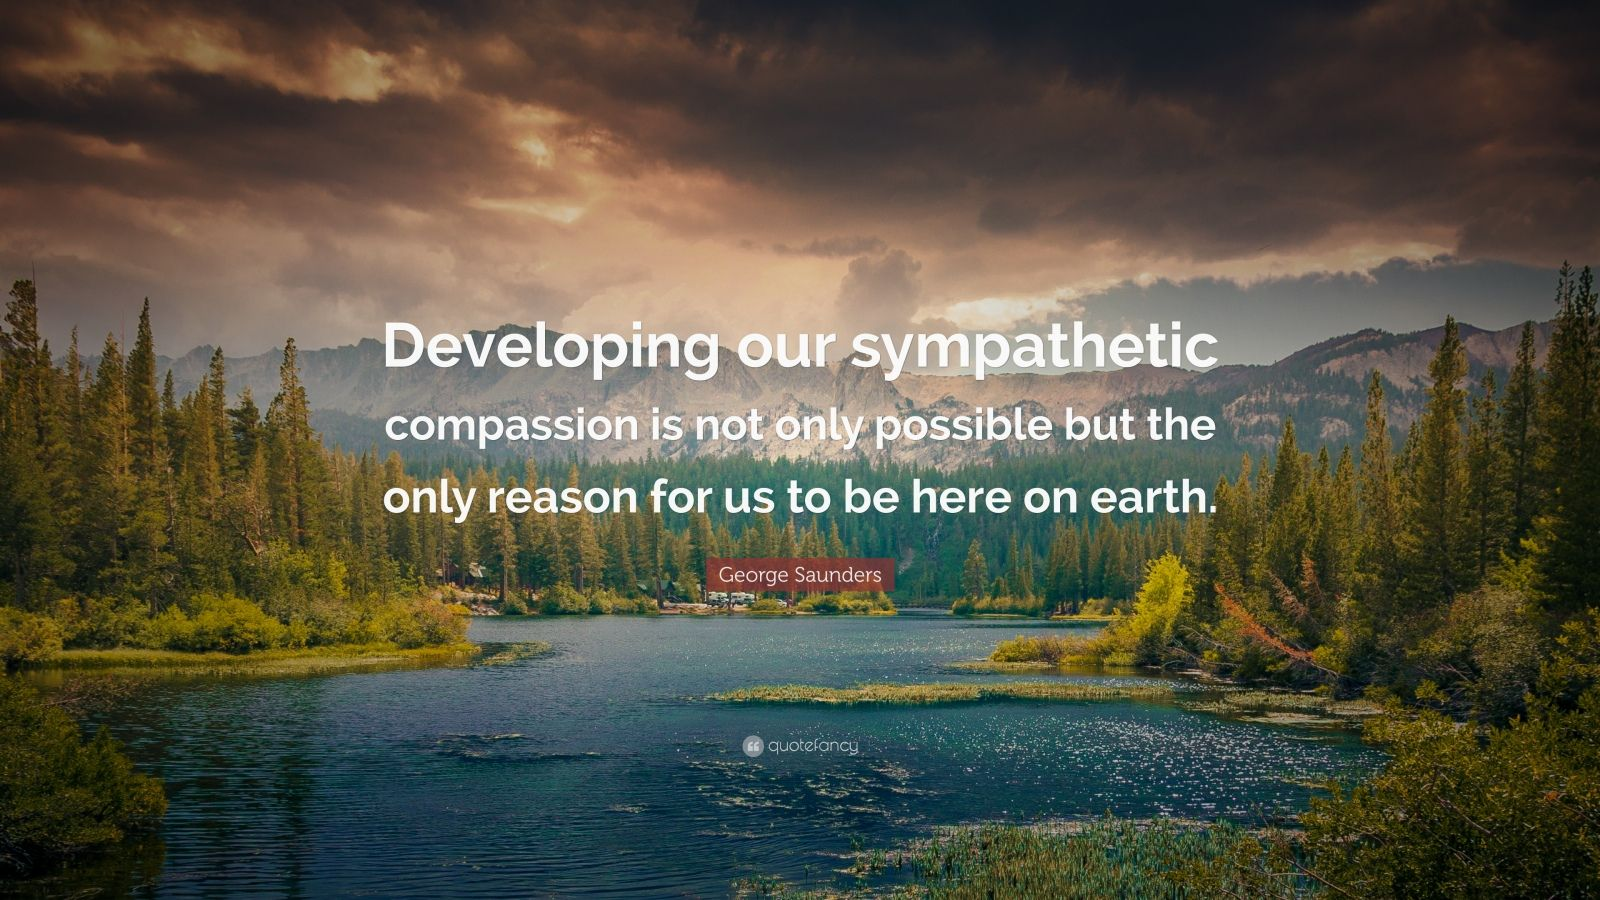 """George Saunders Quote: """"Developing our sympathetic compassion is not only possible but the only reason for us to be here on earth."""""""